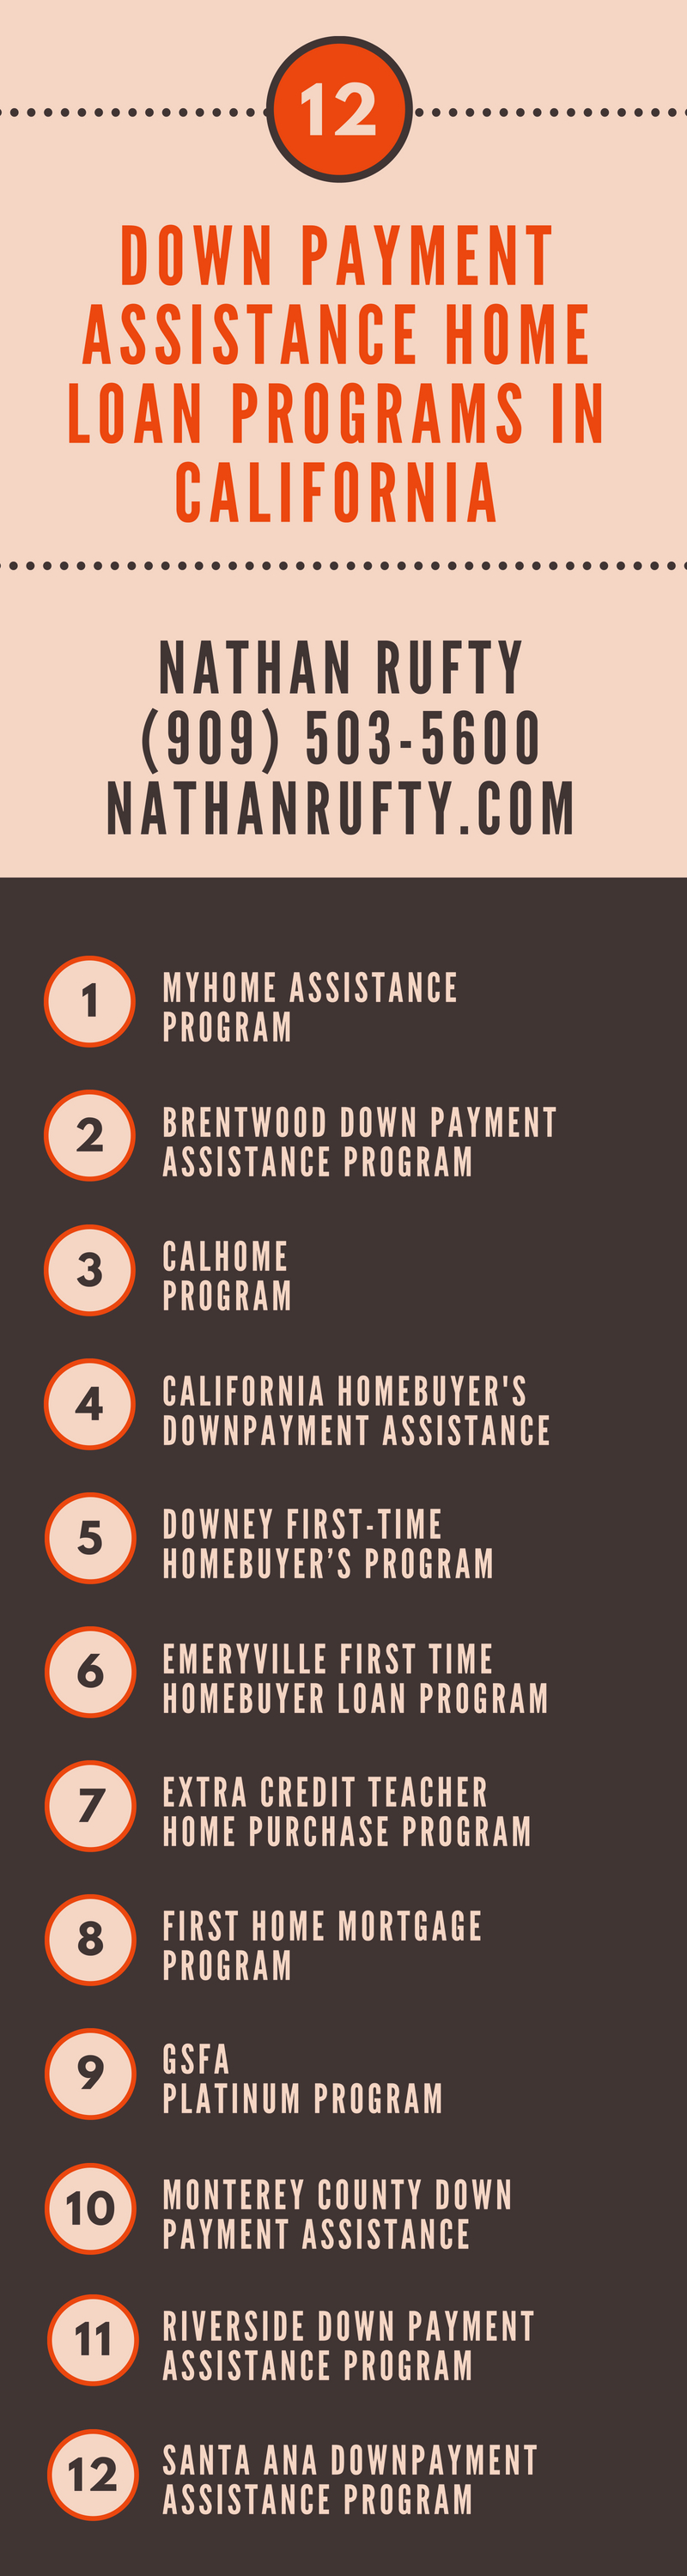 Down Payment Assistance Home Loan Programs in California